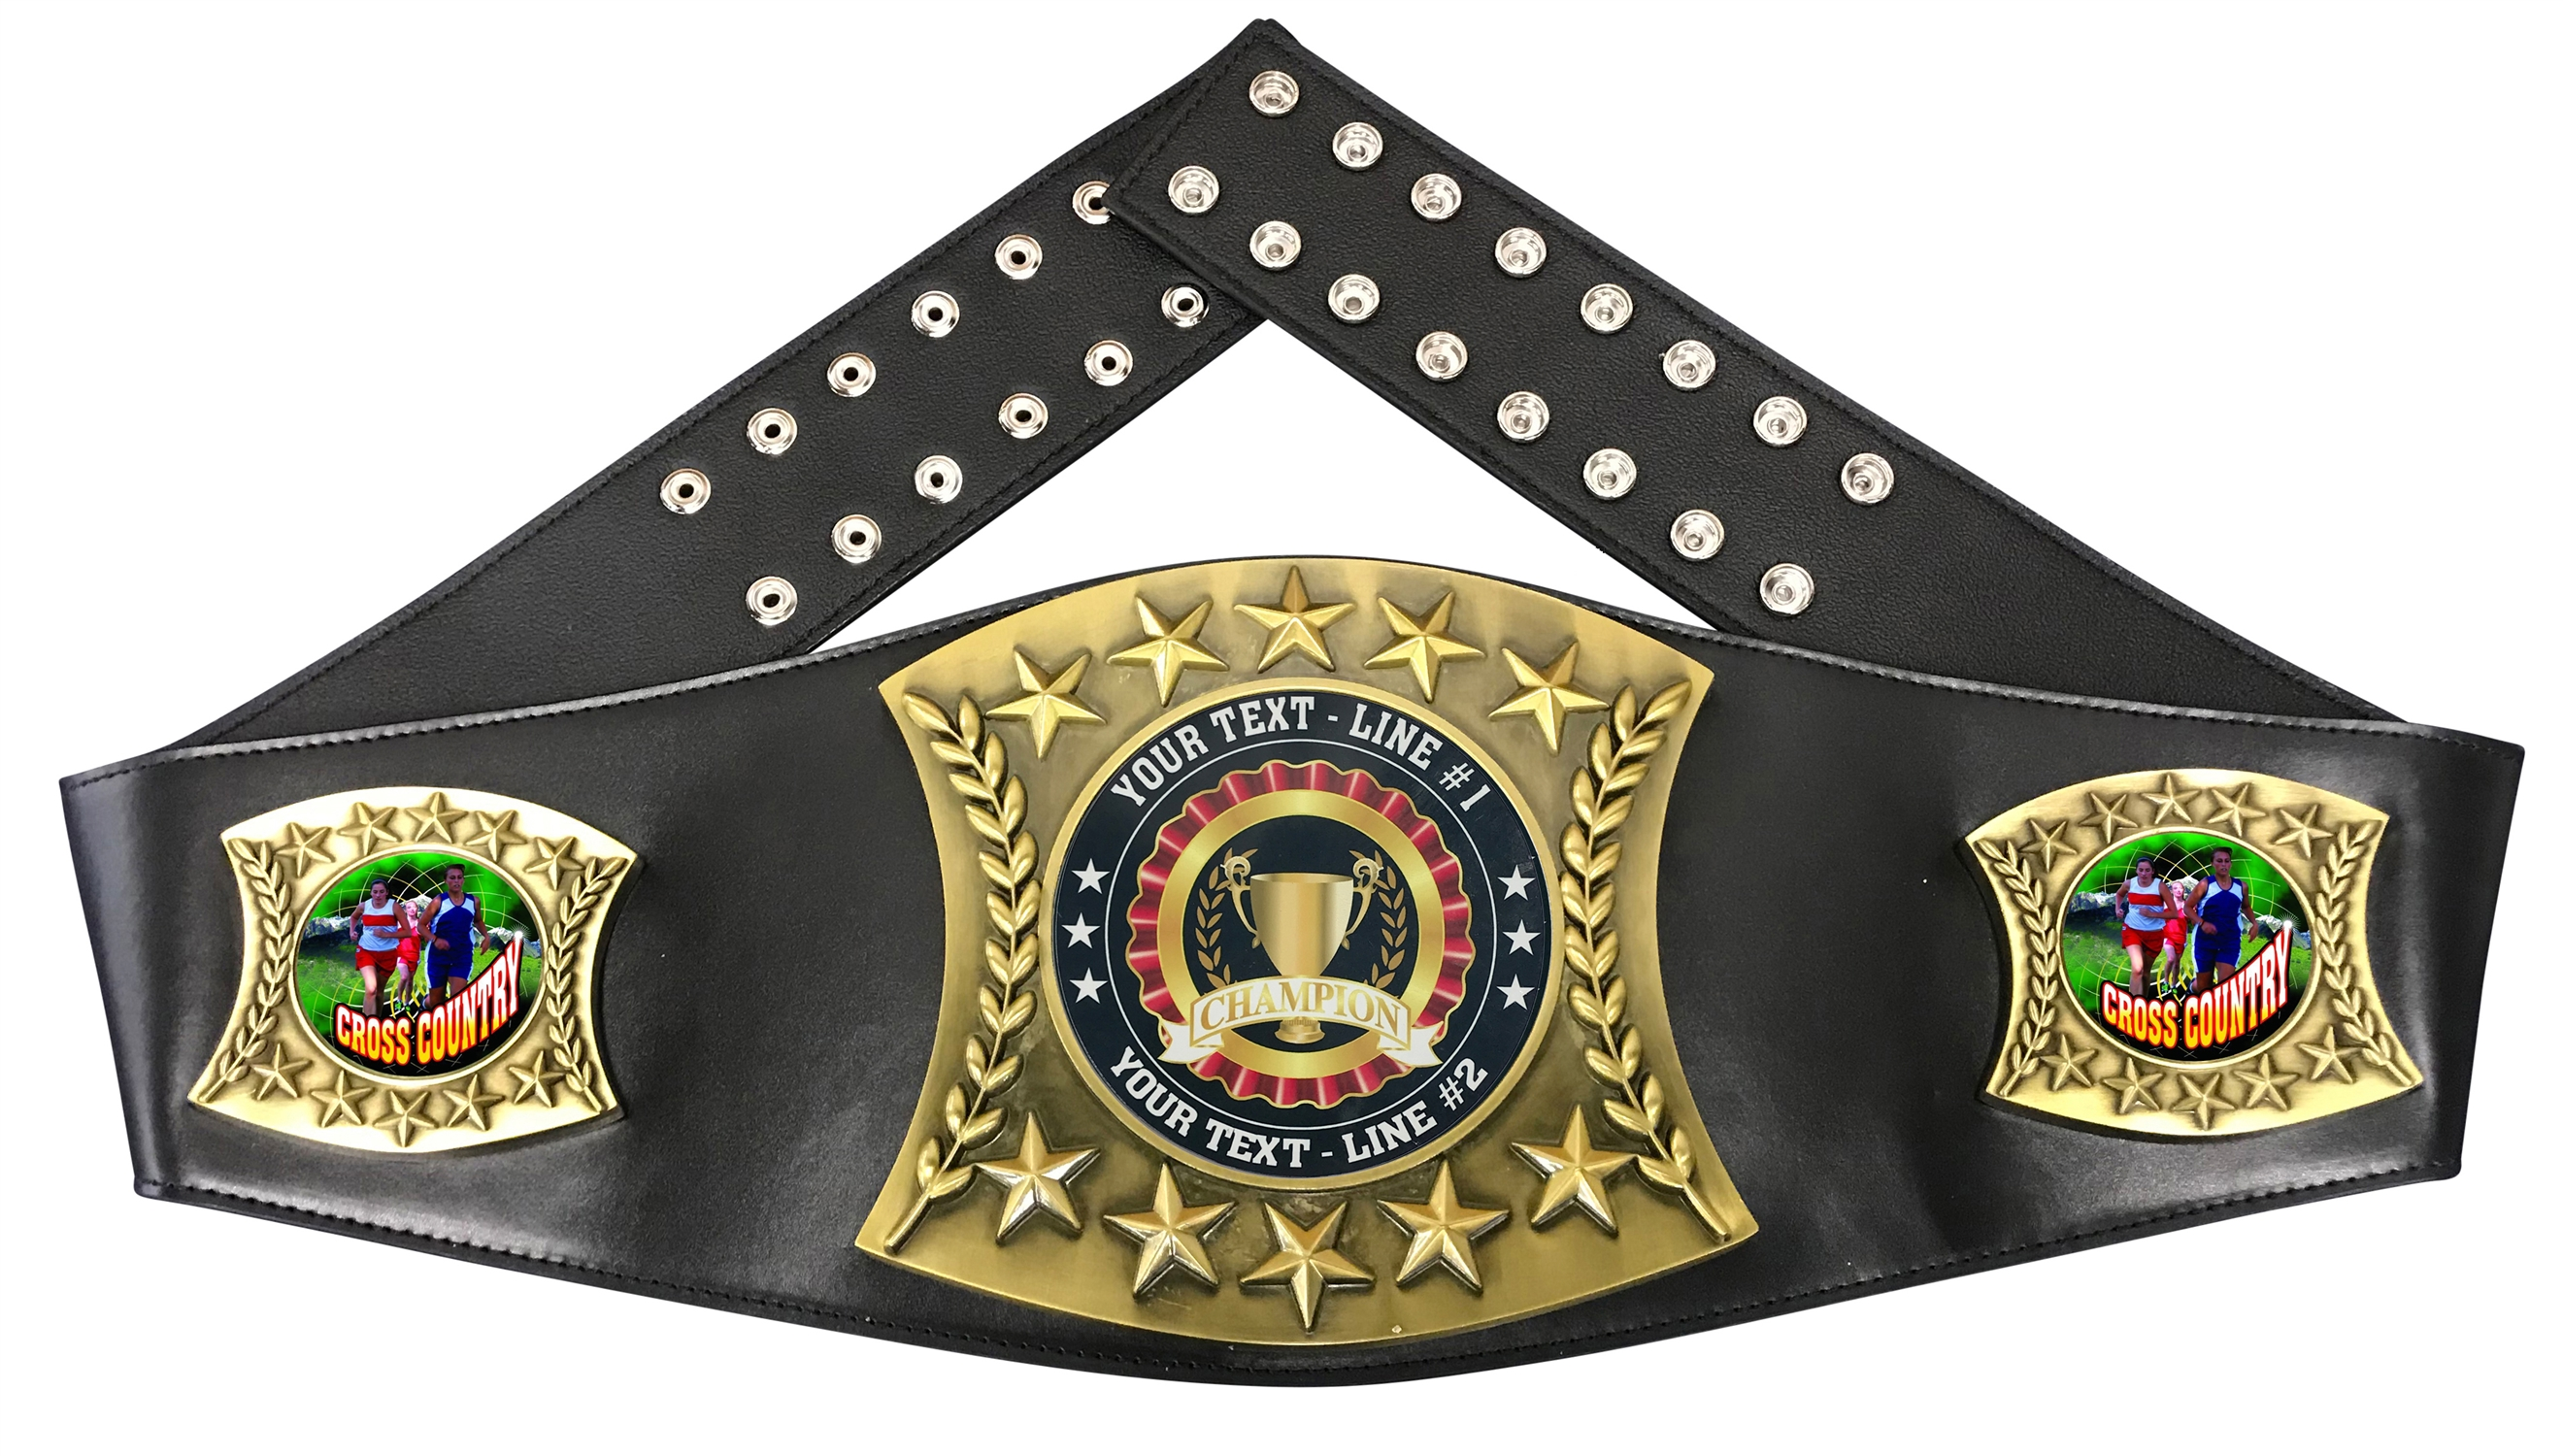 Cross Country Personalized Championship Belt